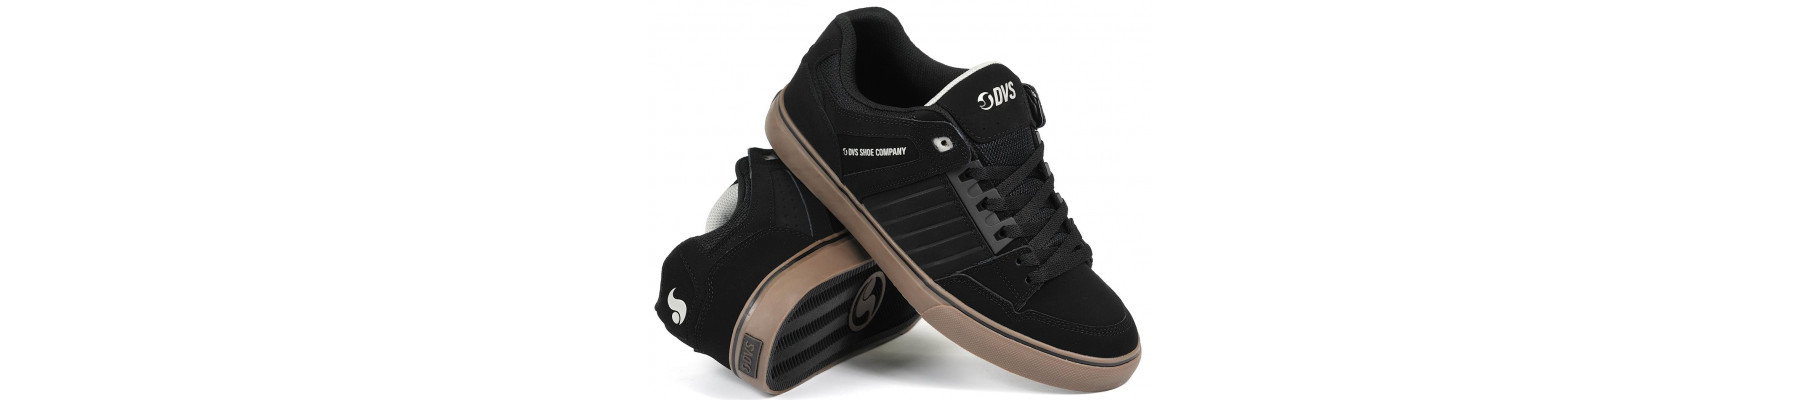 DVS CELSIUS CT BLACKGUM NUBUCK